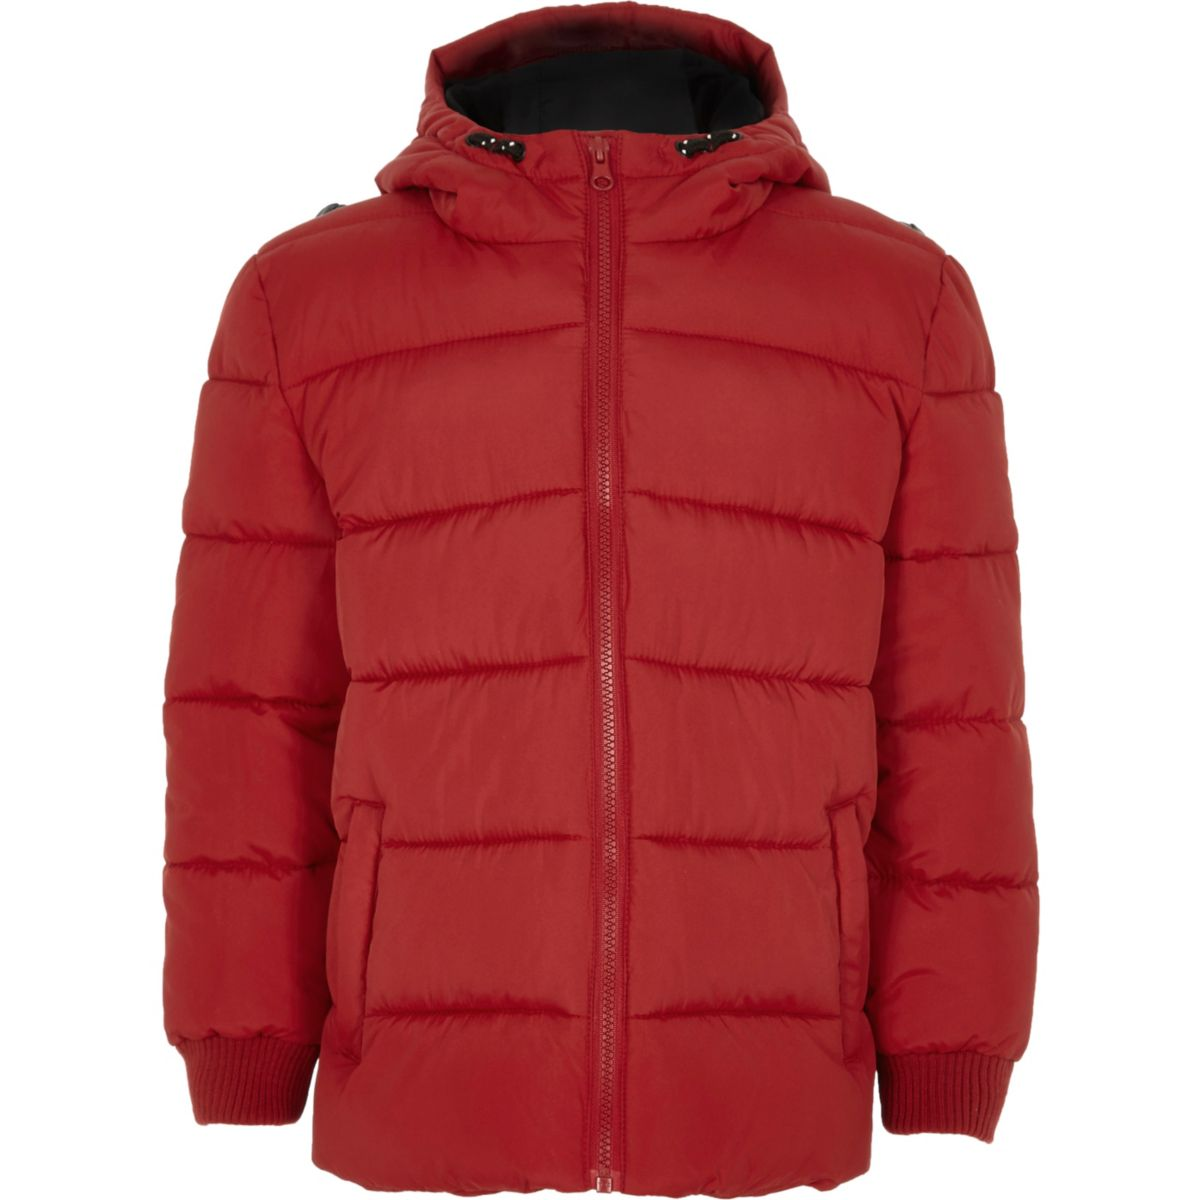 Comfortable red padded puffer coat for little boys by Mayoral, with stylish black and white striped trim. It has a concealed zip fastening down the front, with branded buttons and loops. With a useful detachable hood, side pockets, and a super soft fleecy lining to keep him snug and warm.